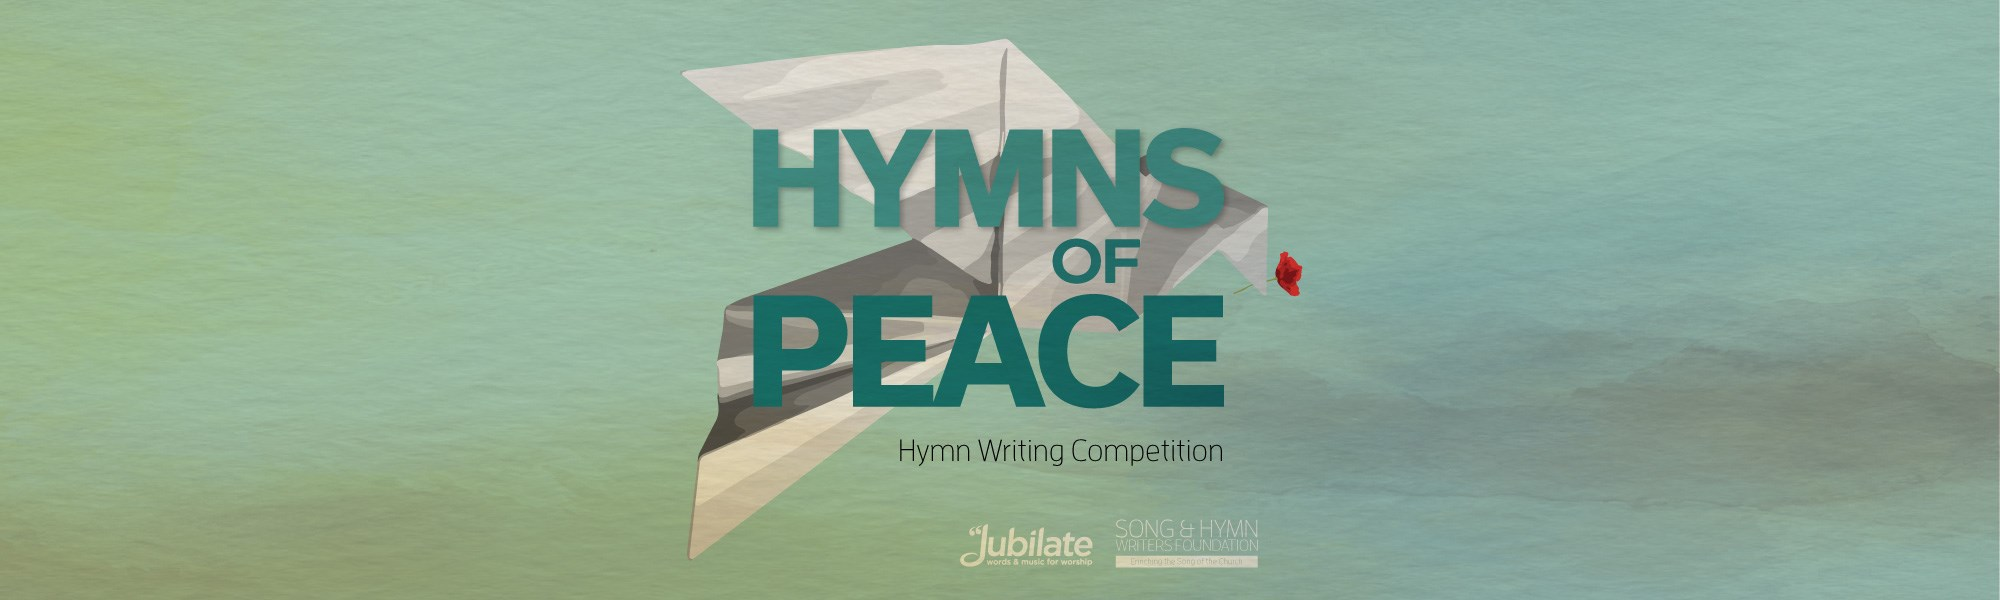 Hymns of Peace banner